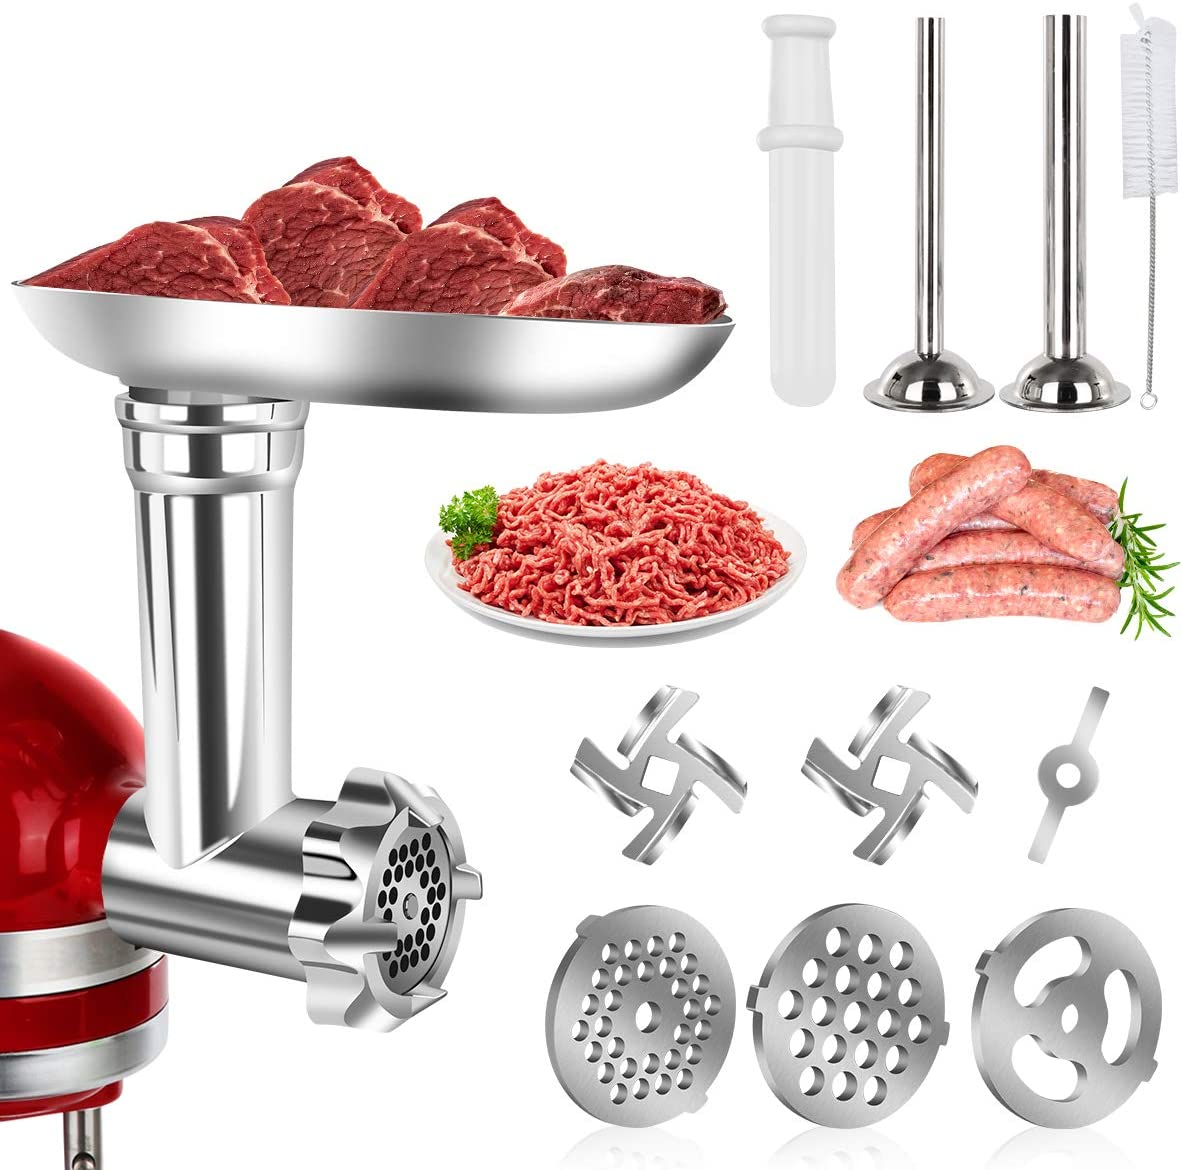 Food Meat Grinder Attachments For Kitchenaid Stand Mixers Durable Meat Grinder,